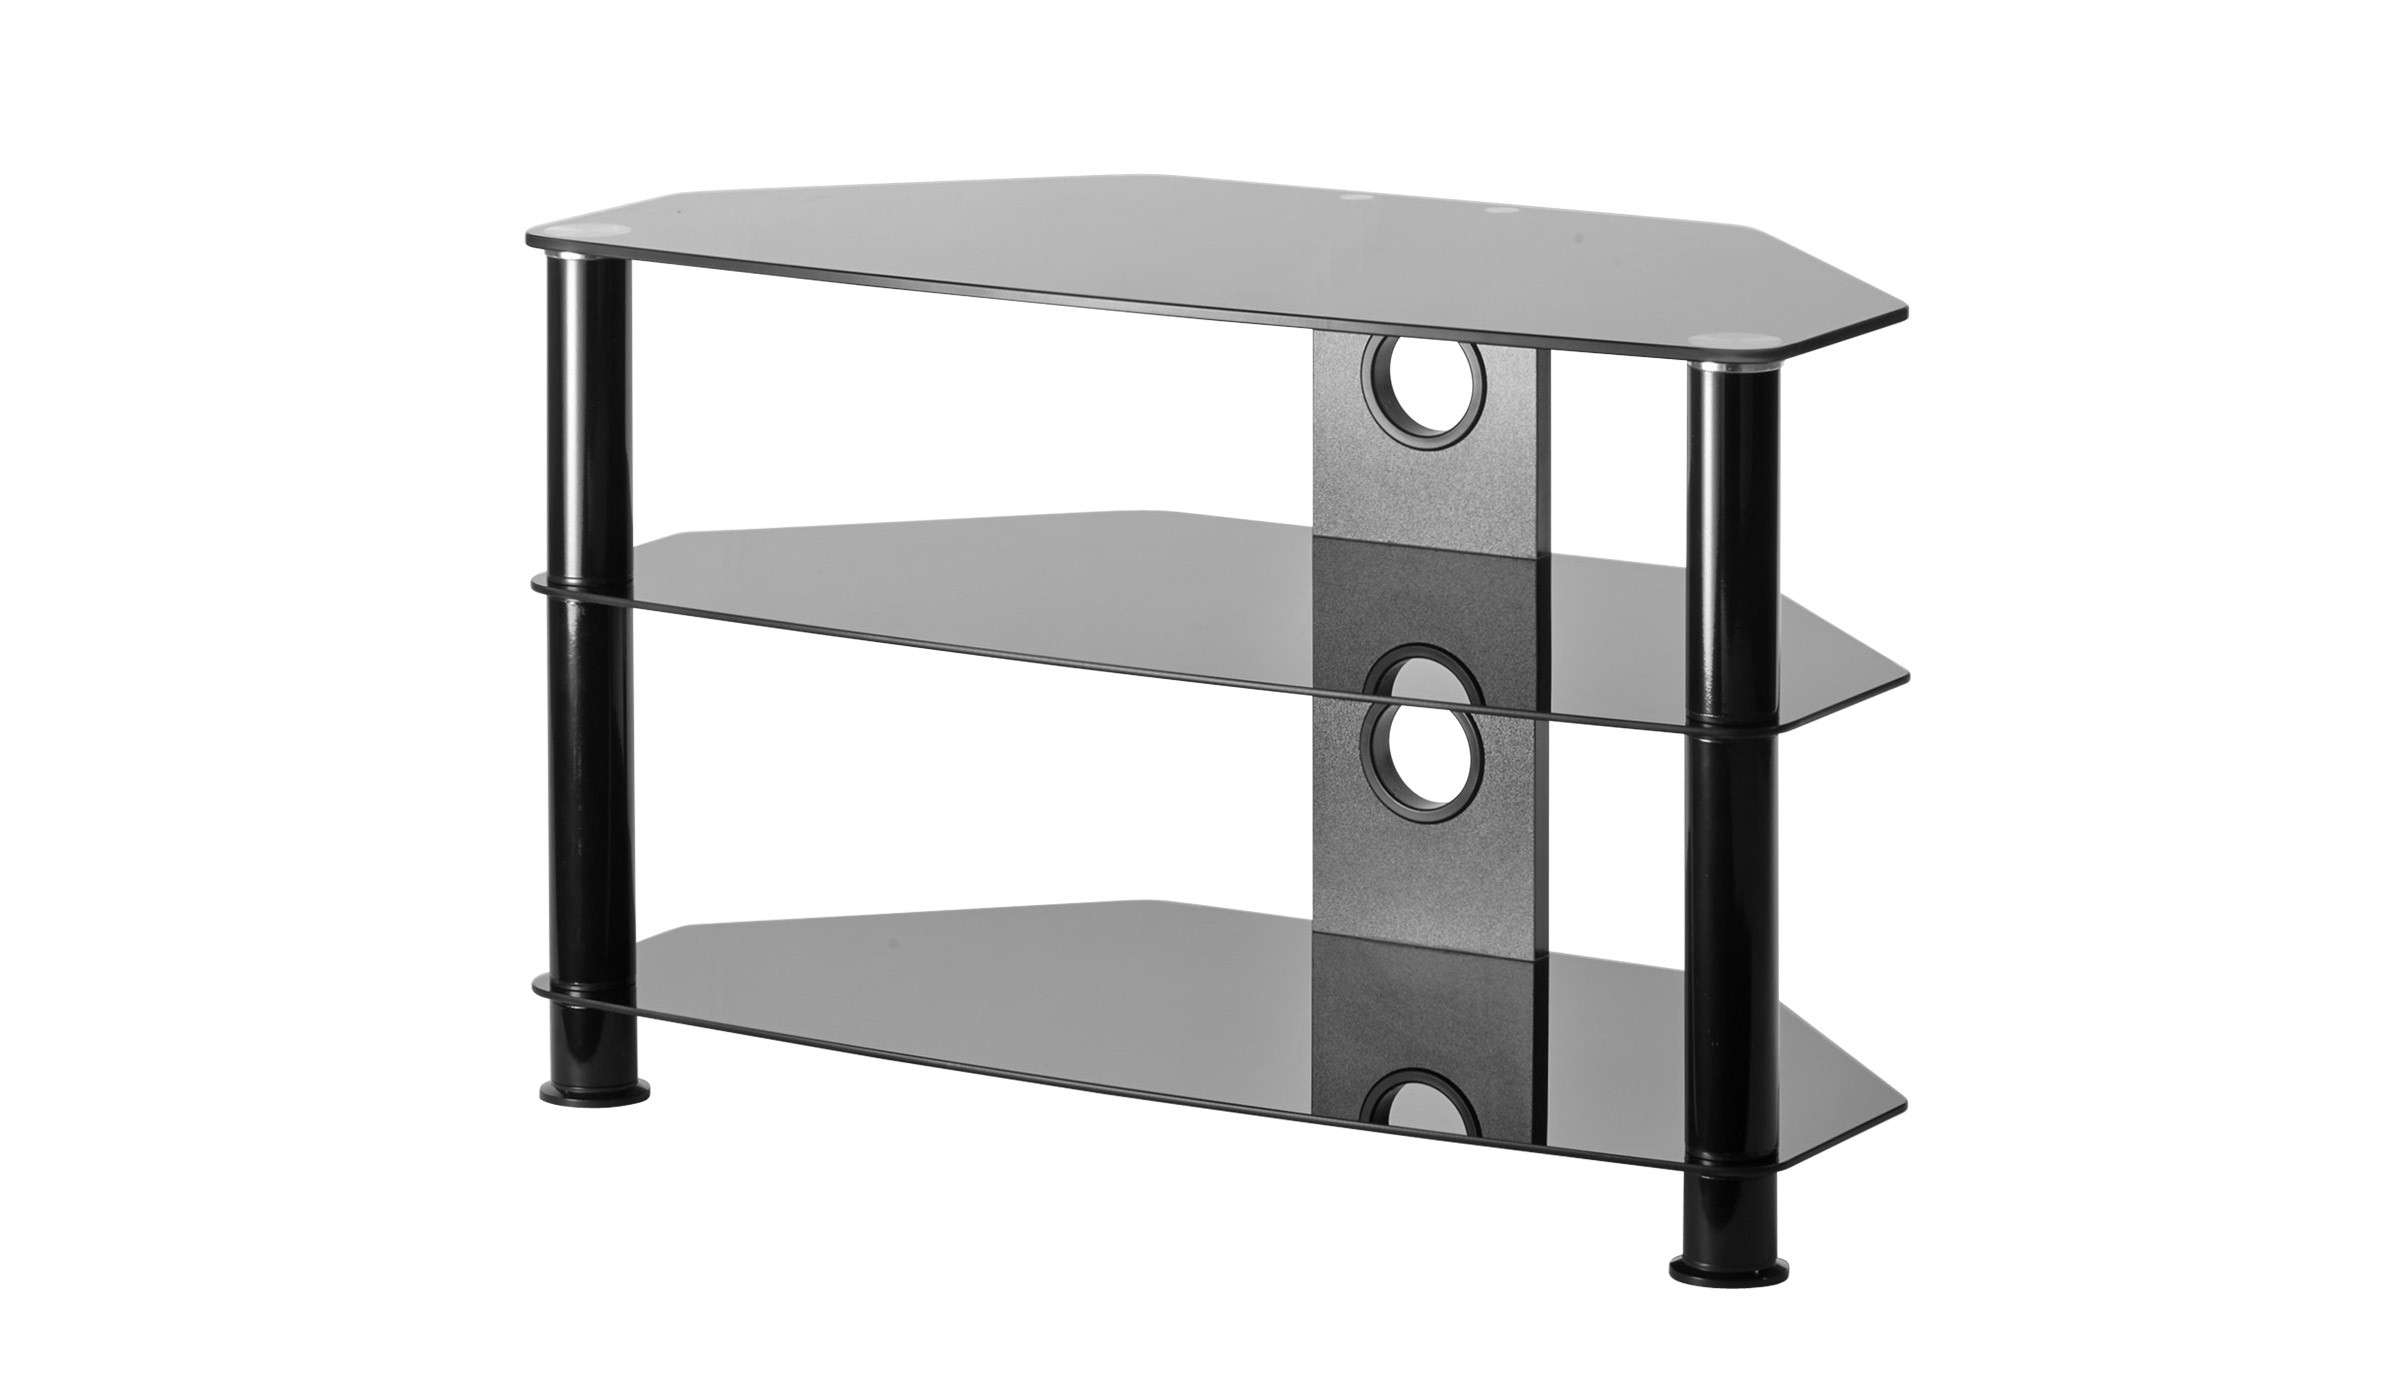 Black Glass Corner Tv Stand Up To 37 Inch Tv | Mmt Db800 Within Black Corner Tv Cabinets (View 17 of 20)